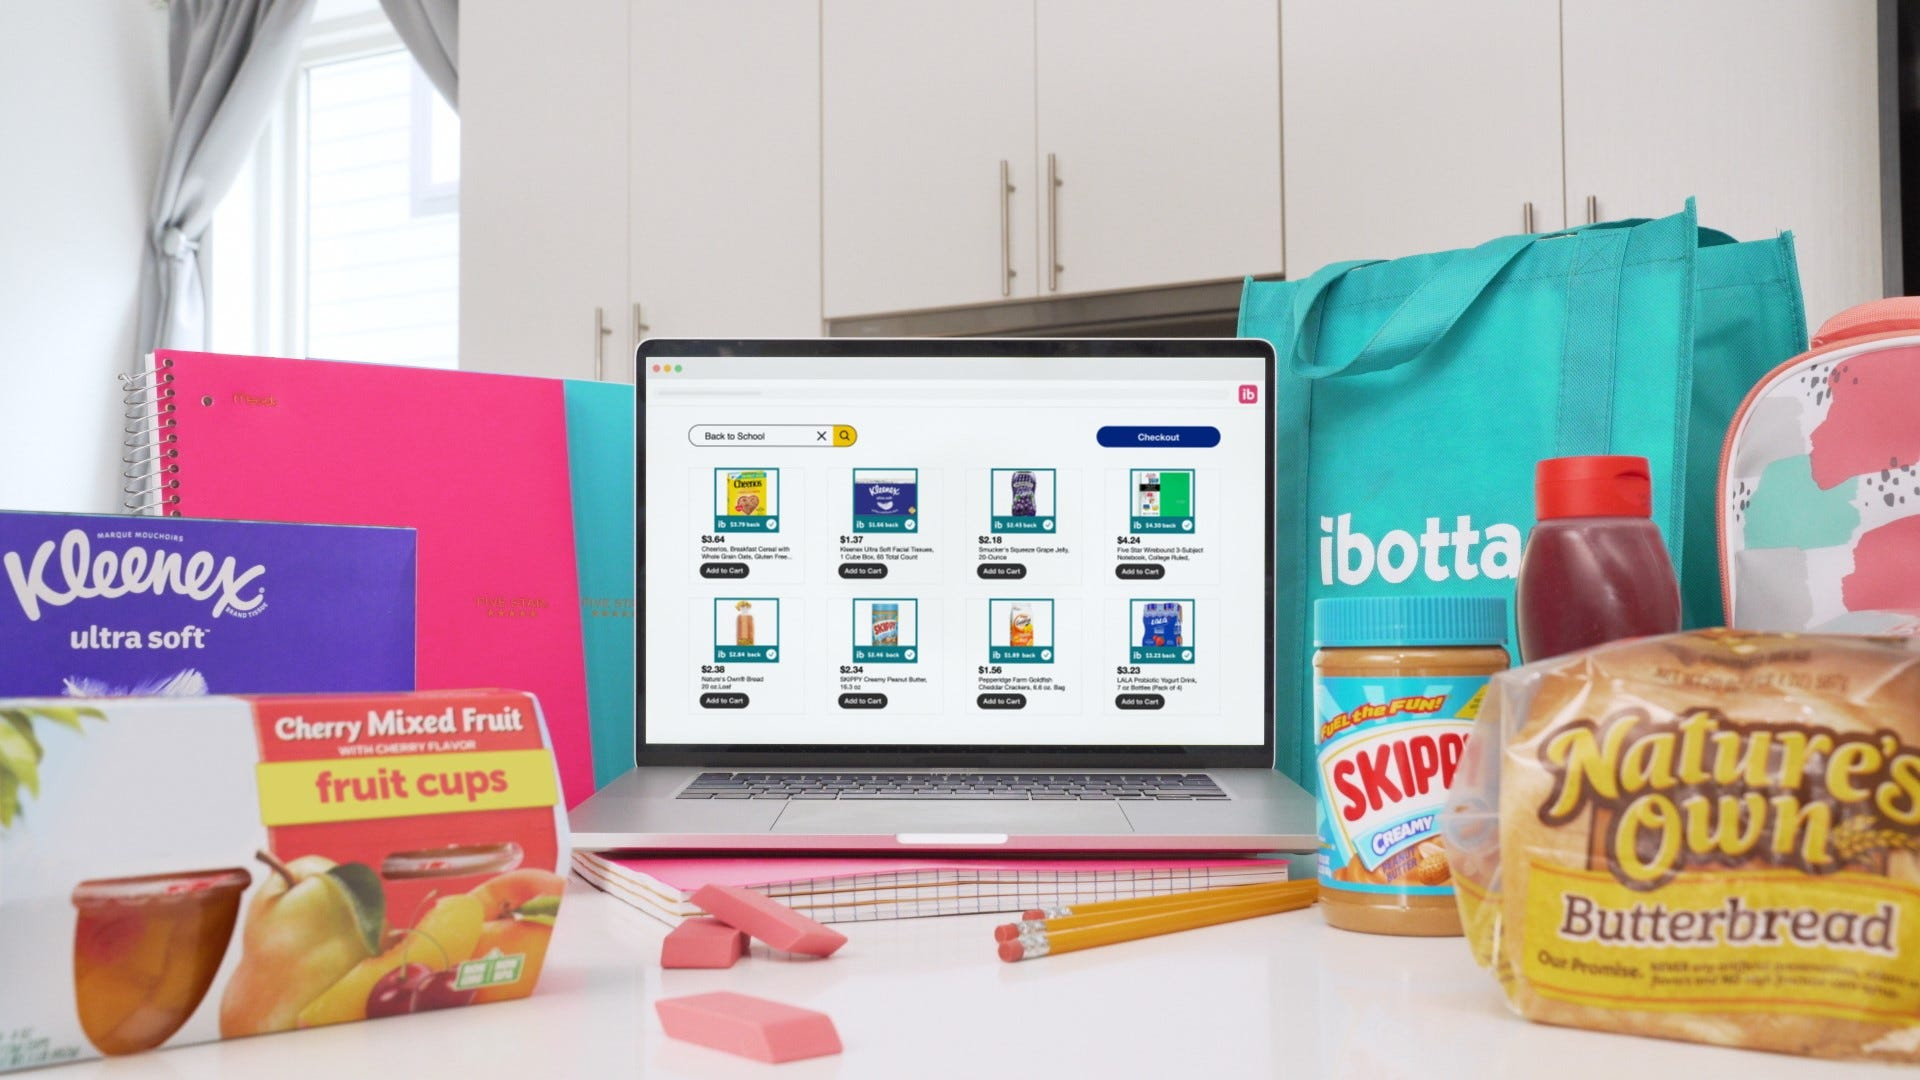 Cashback app Ibotta giving away free school supplies for back to school at Walmart, Target and more